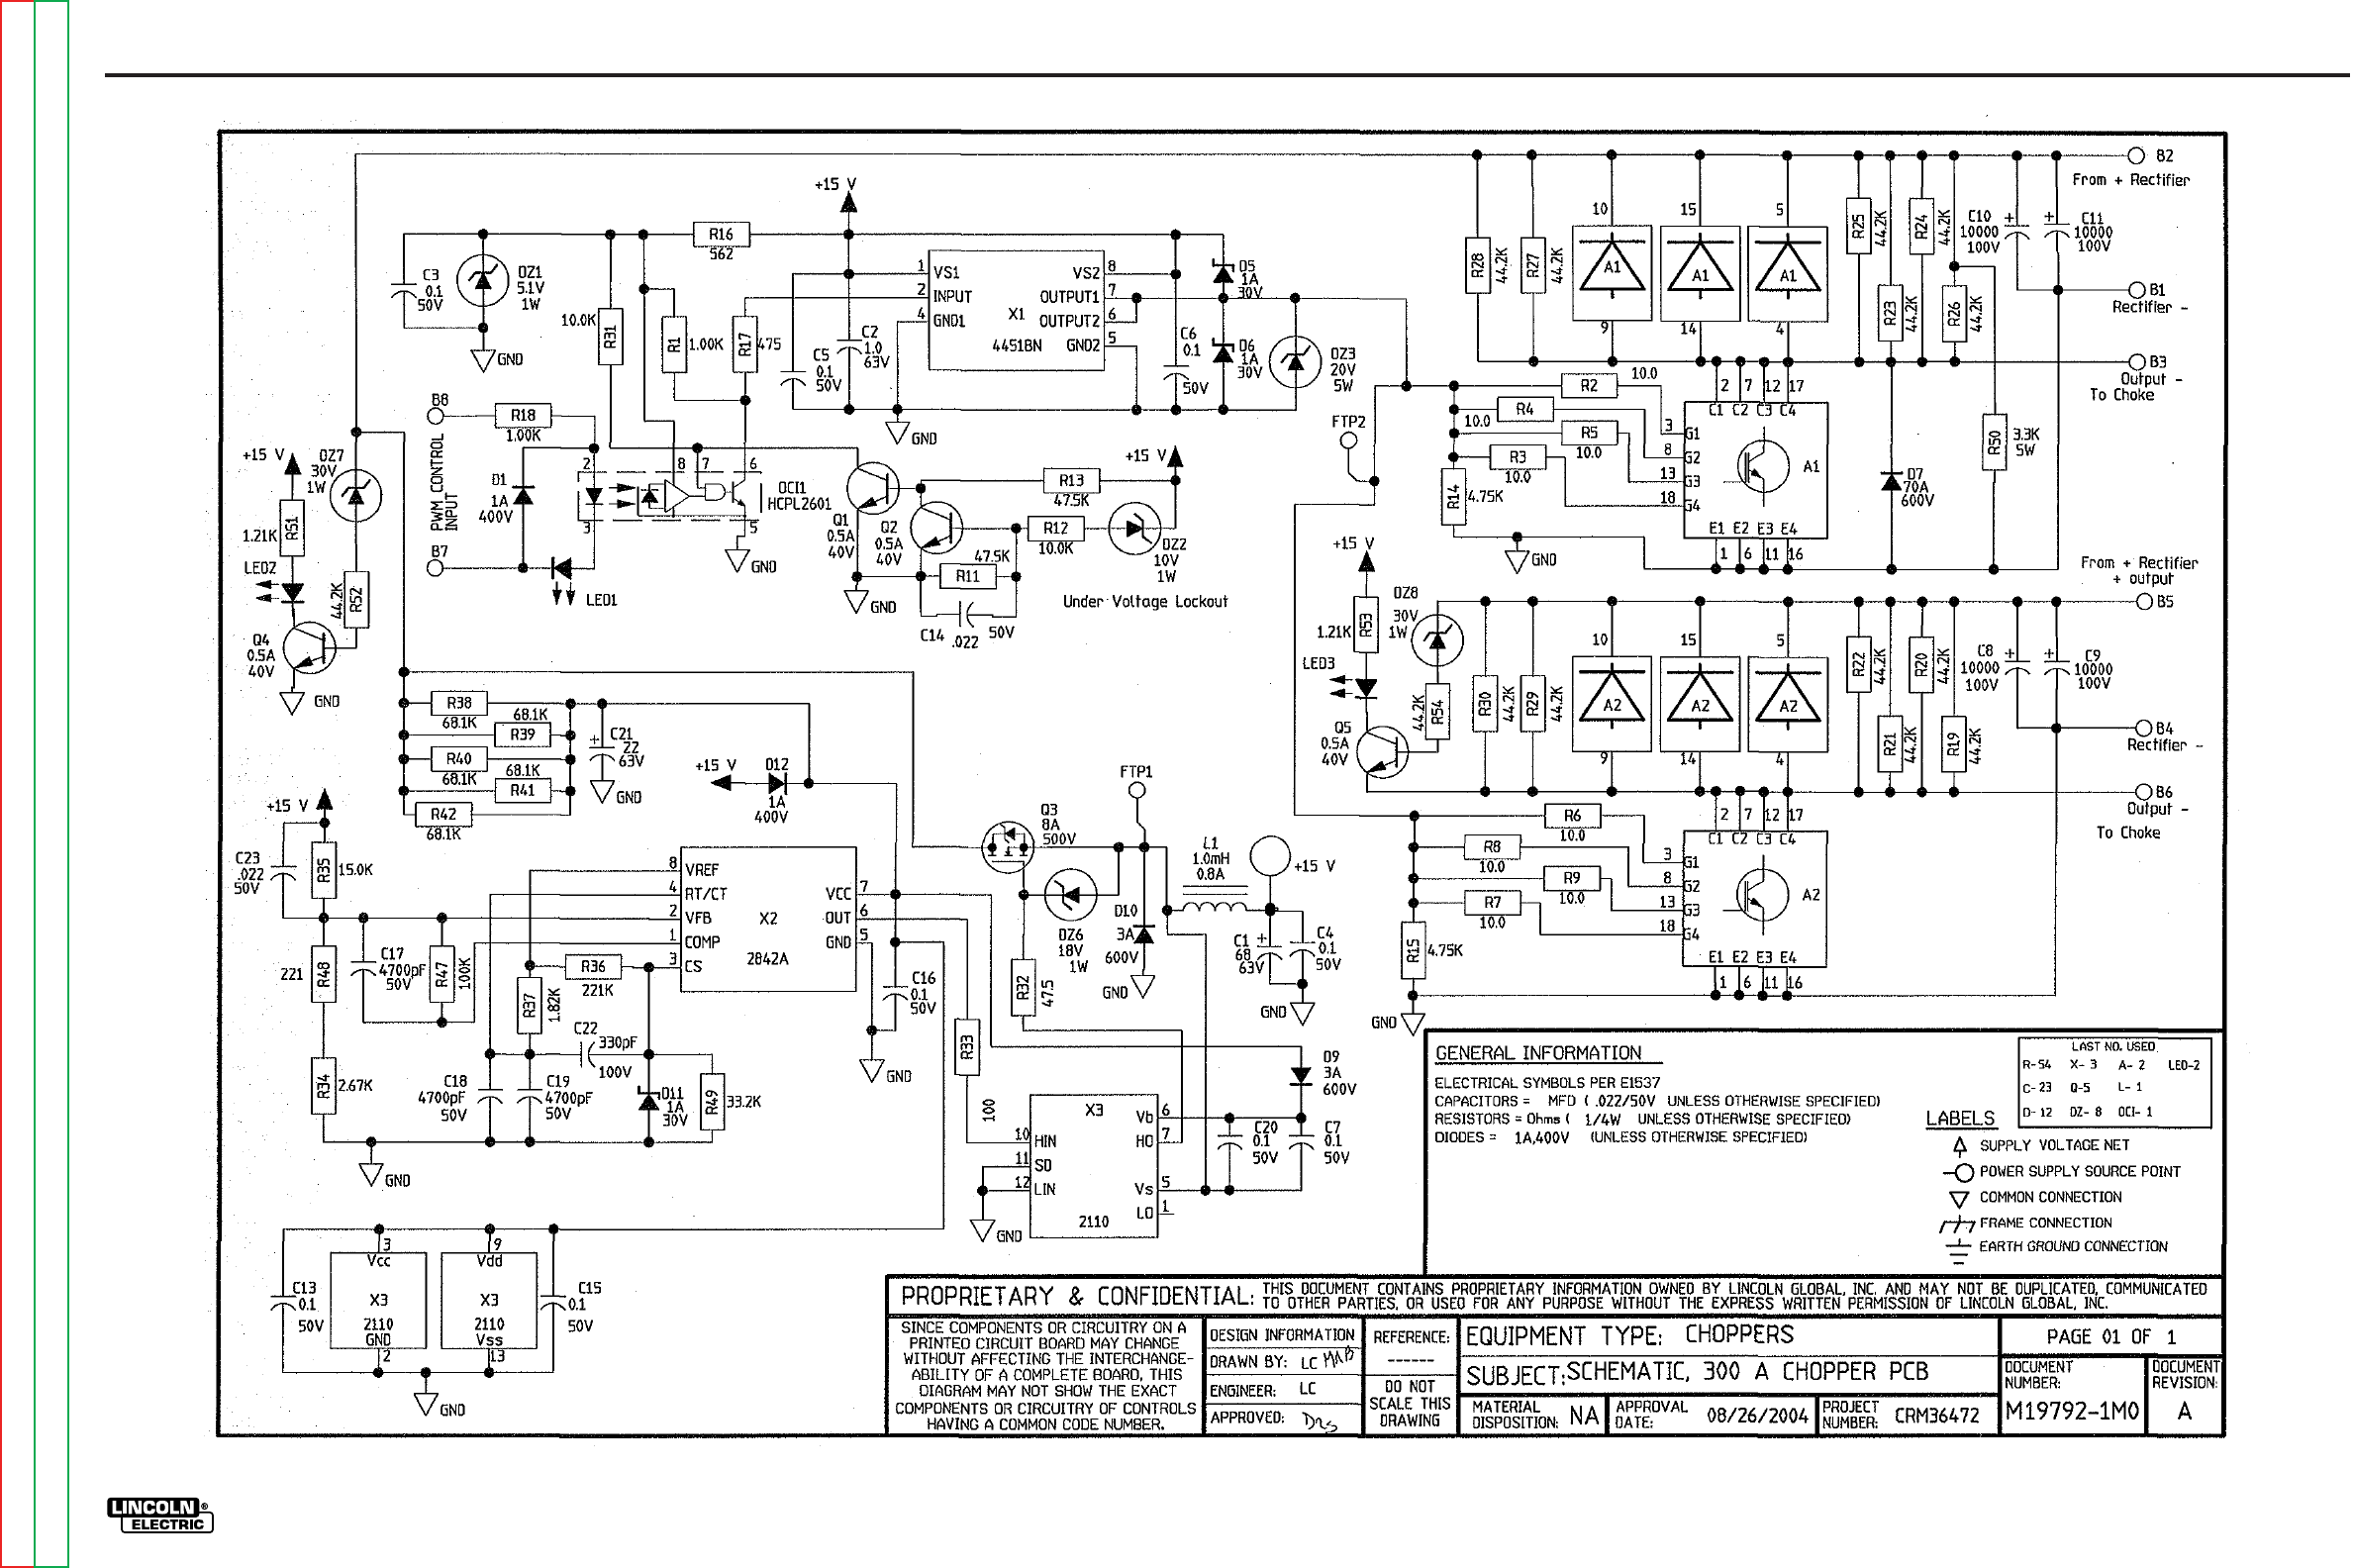 4120fa81 f002 437a 8450 adc1b65838a4 bgc1 page 193 of lincoln electric welder svm175 a user guide lincoln welder wiring diagram at gsmx.co